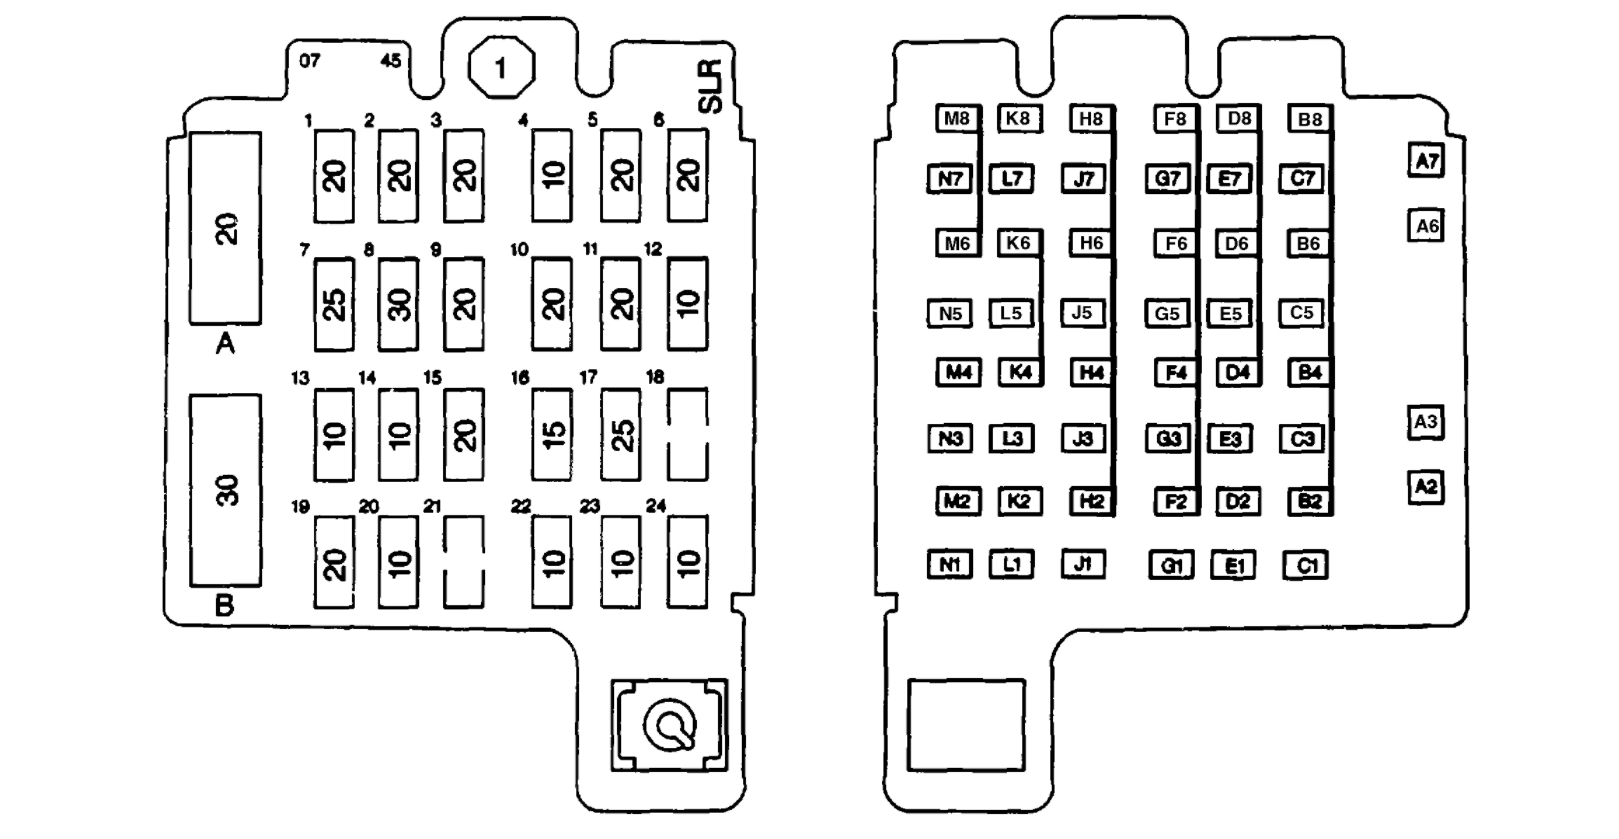 Fuse Box Diagram Needed: Can You Help Me with the Fuse Box